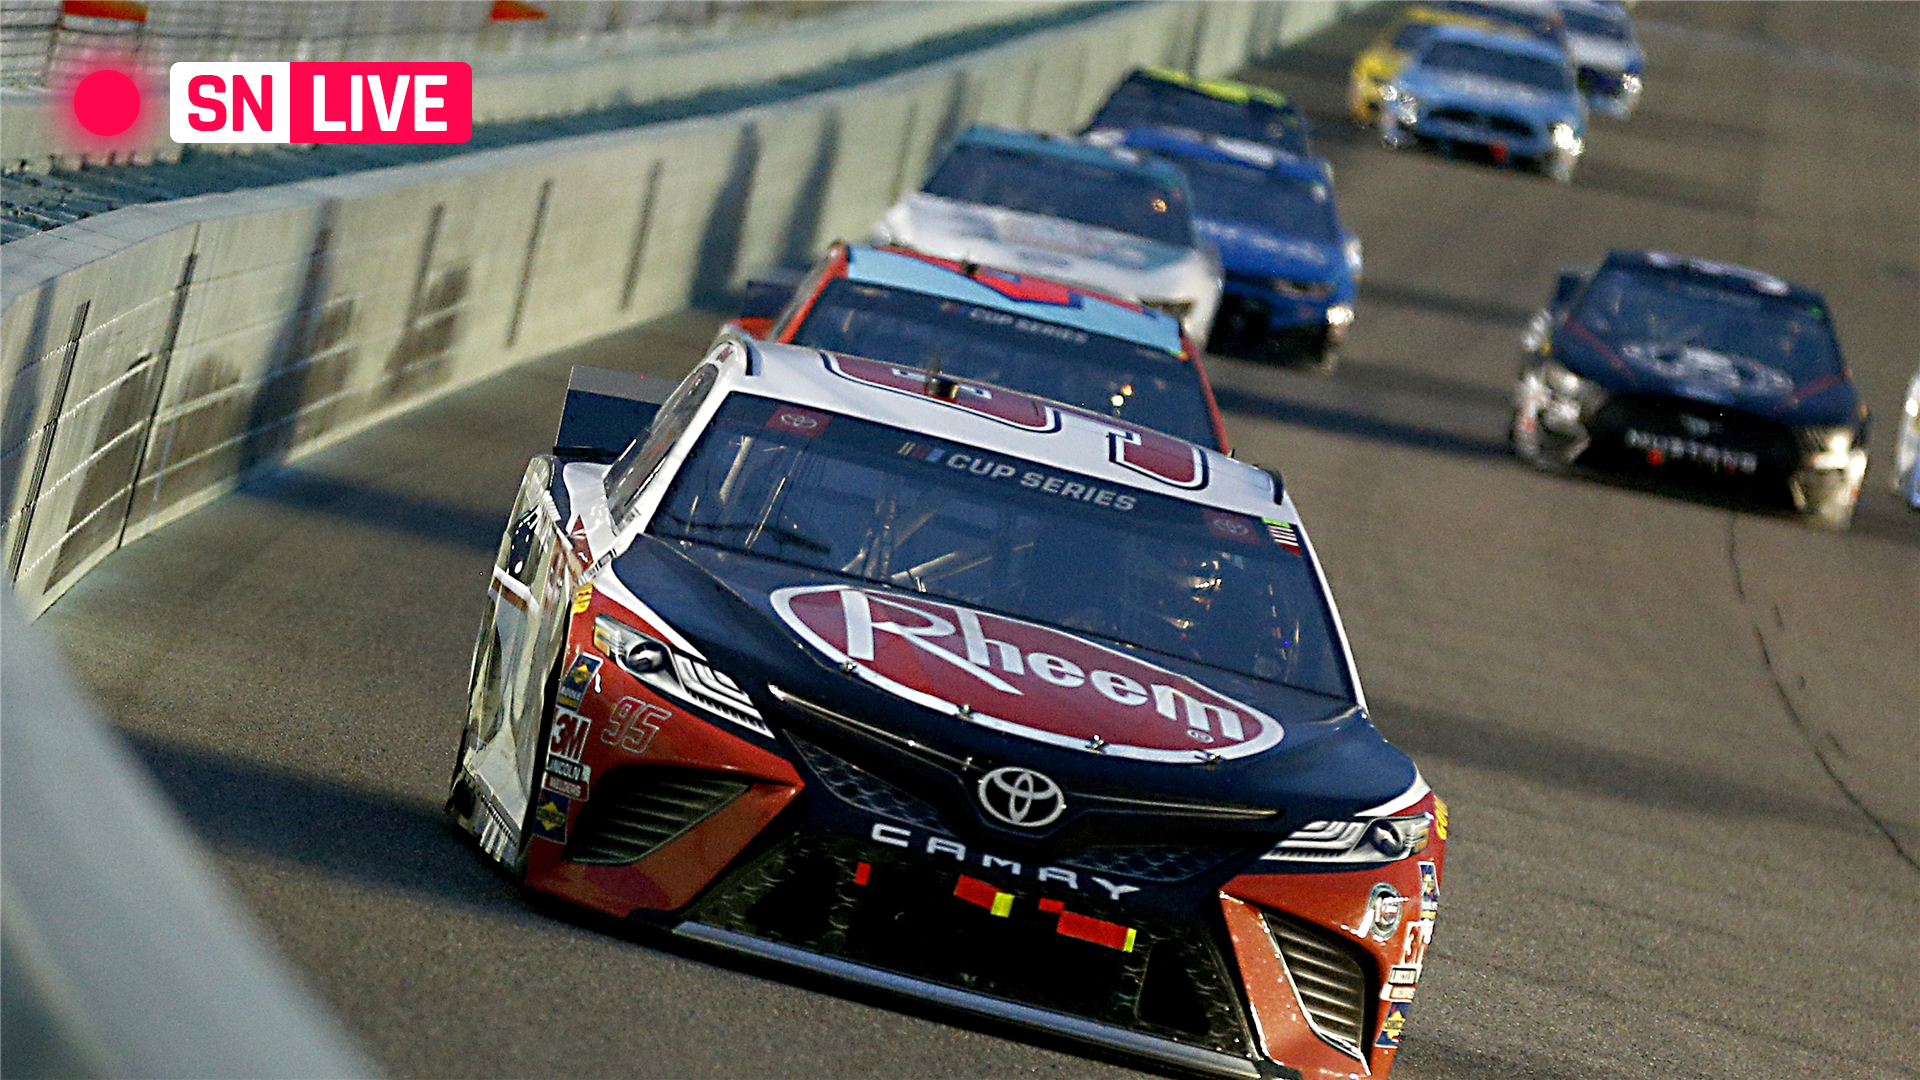 NASCAR at Homestead results: William Byron goes from 31st to first in Dixie Vodka 400 victory